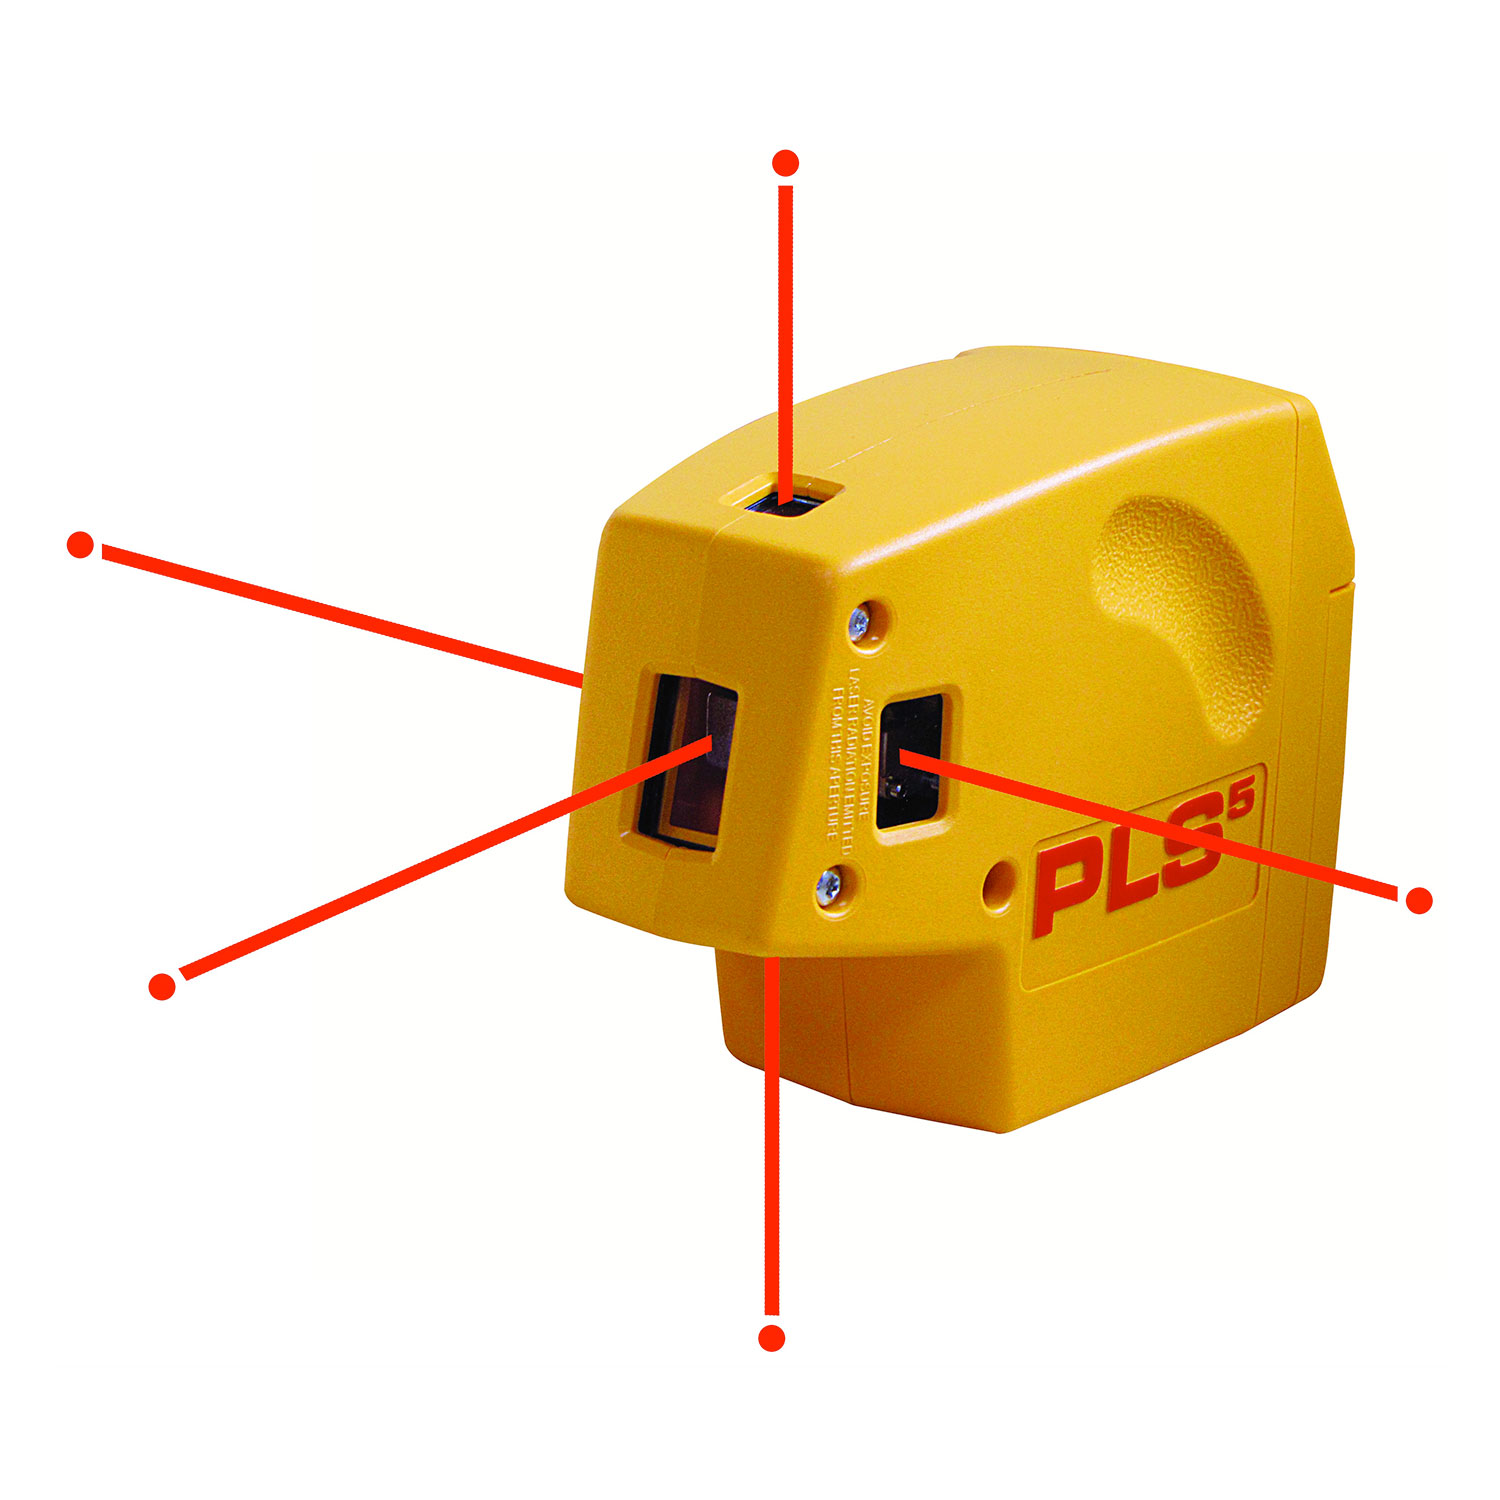 Pacific Laser Systems Pls5 Tool 5 Dot Laser Level